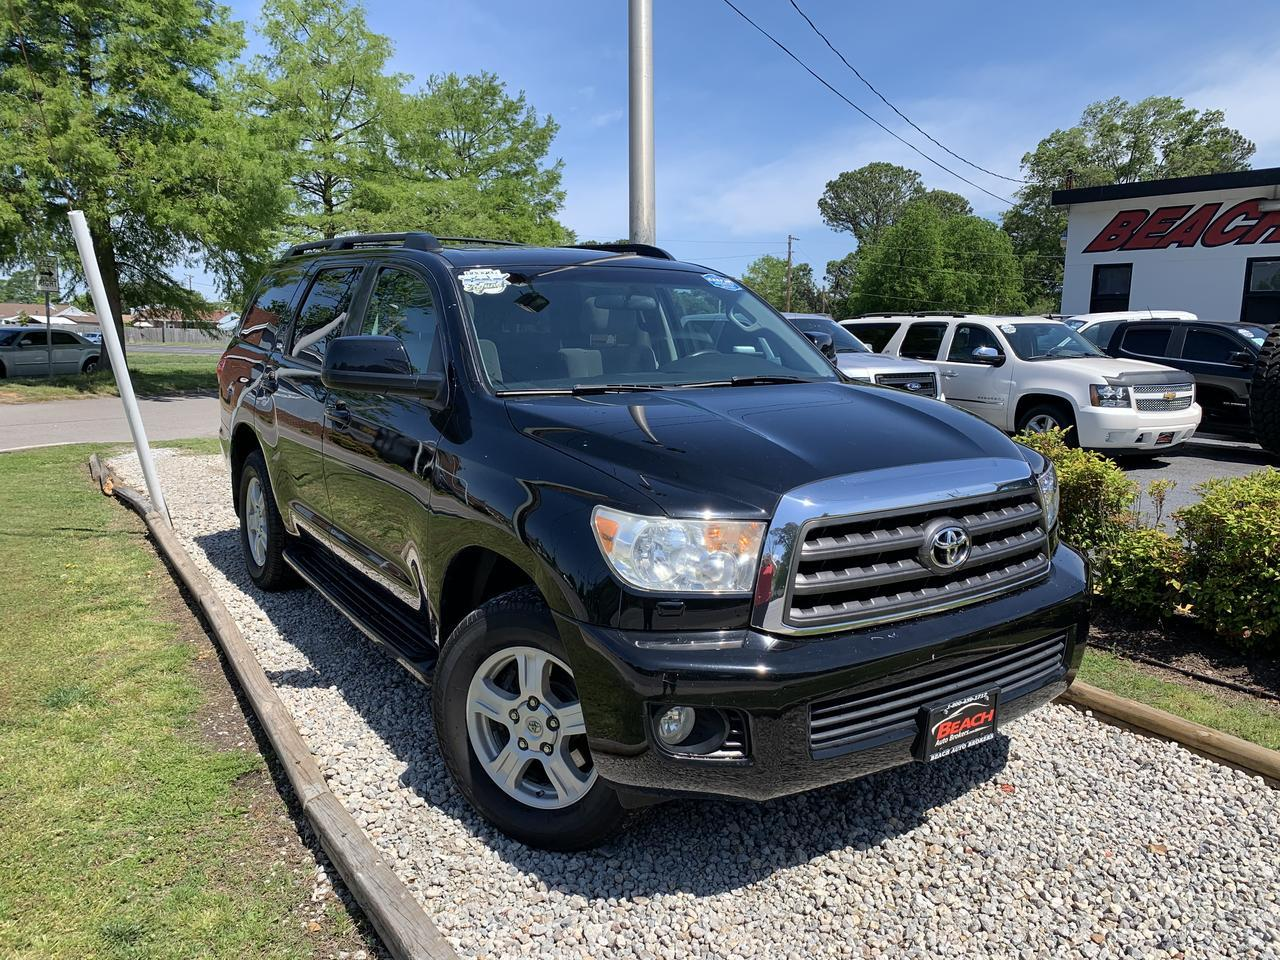 2010 TOYOTA SEQUOIA SR5 4X4, WARRANTY, AUX/USB PORT, 3RD ROW, SUNROOF, PARKING SENSORS, RUNNING BOARDS, TOW PKG,1 OWNER! Norfolk VA